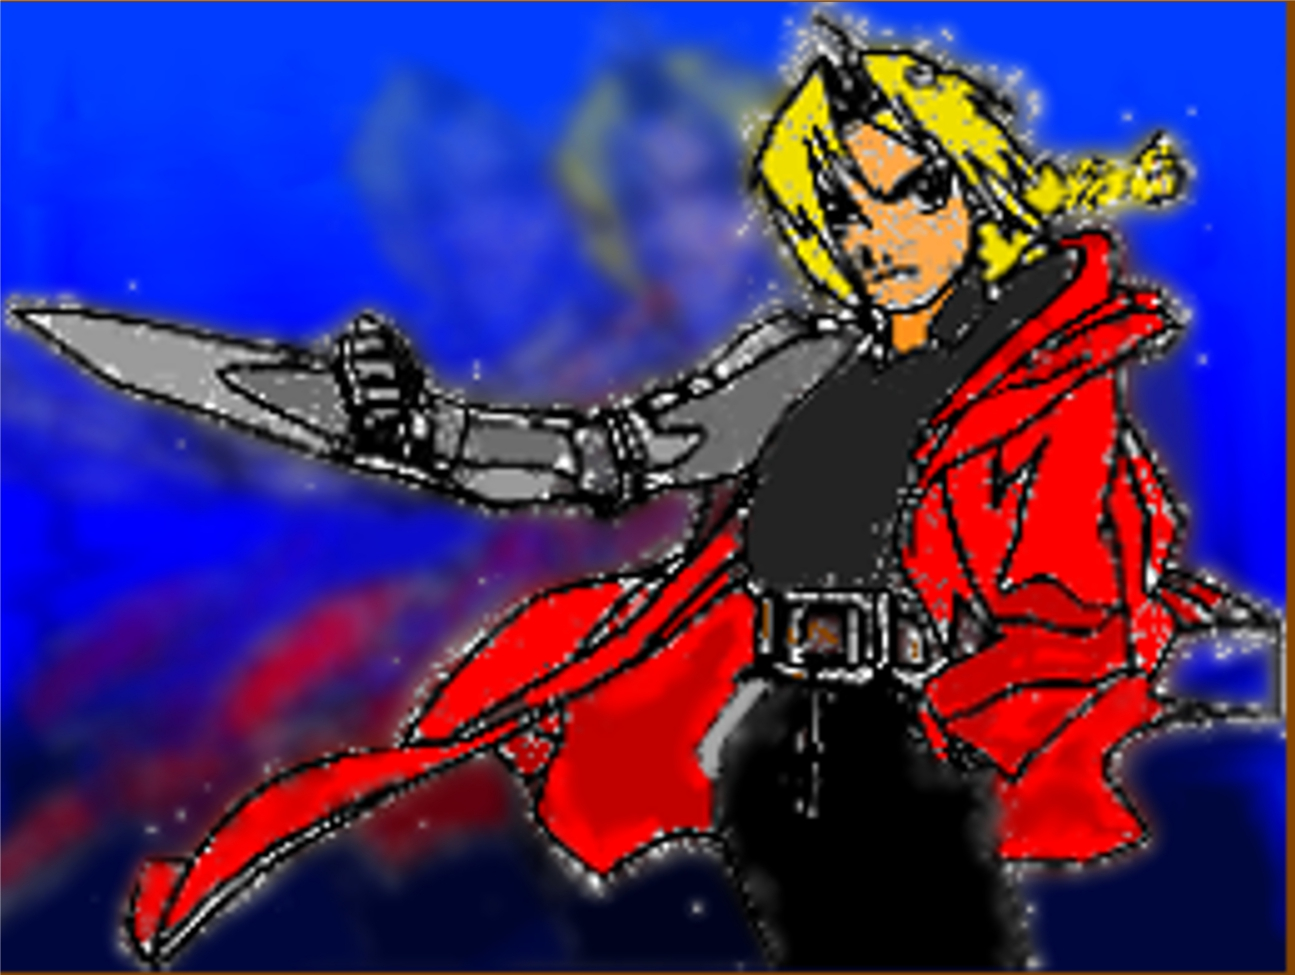 ed fma fan art